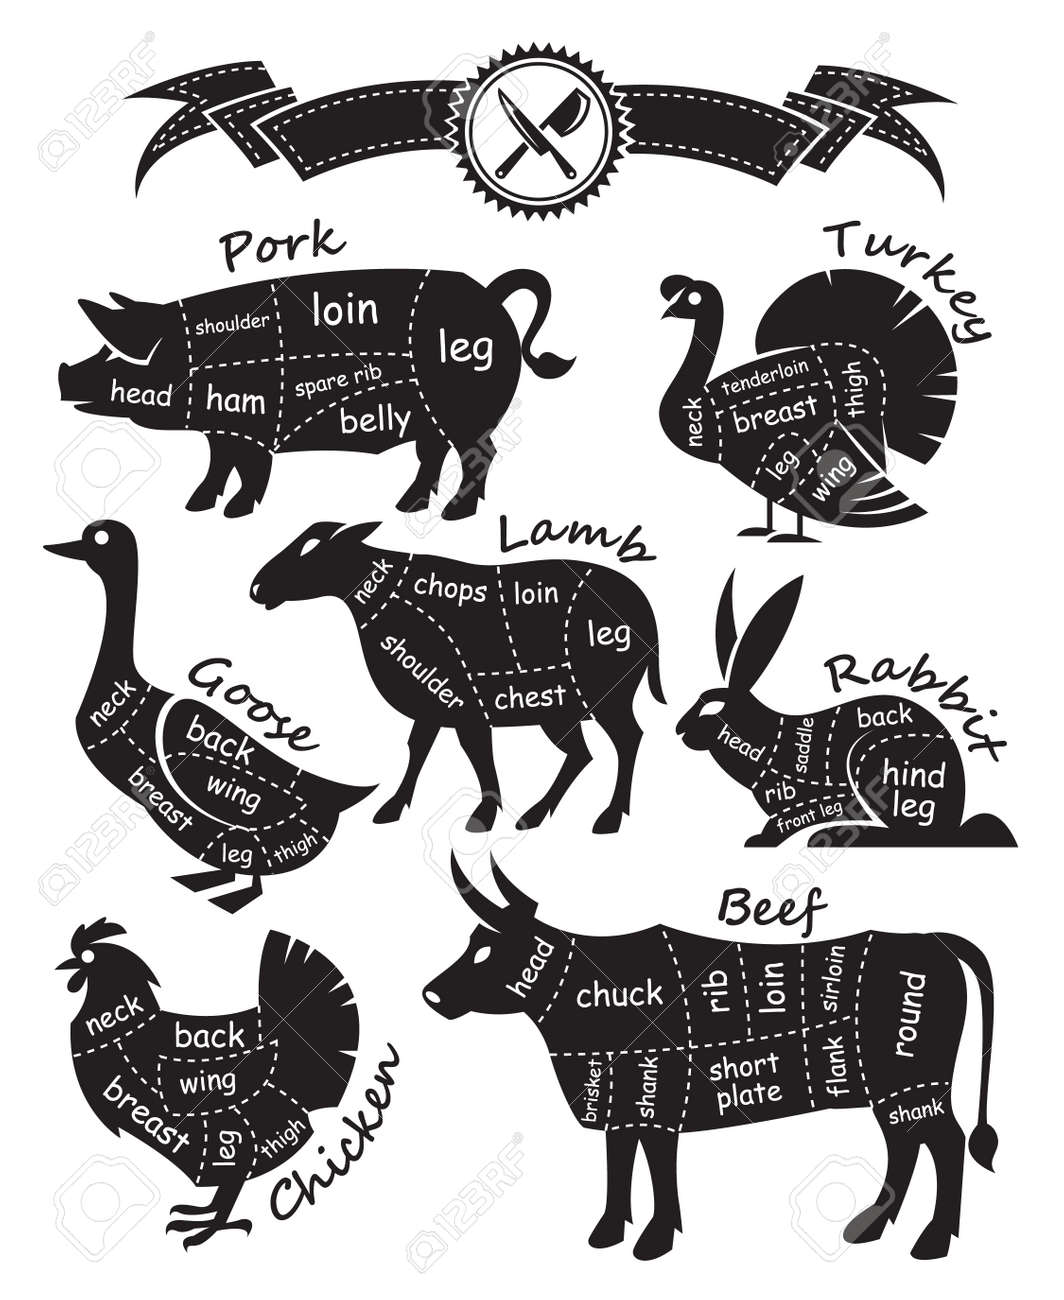 monochrome diagram guide for cutting meat royalty free cliparts  : meat cut diagram - findchart.co